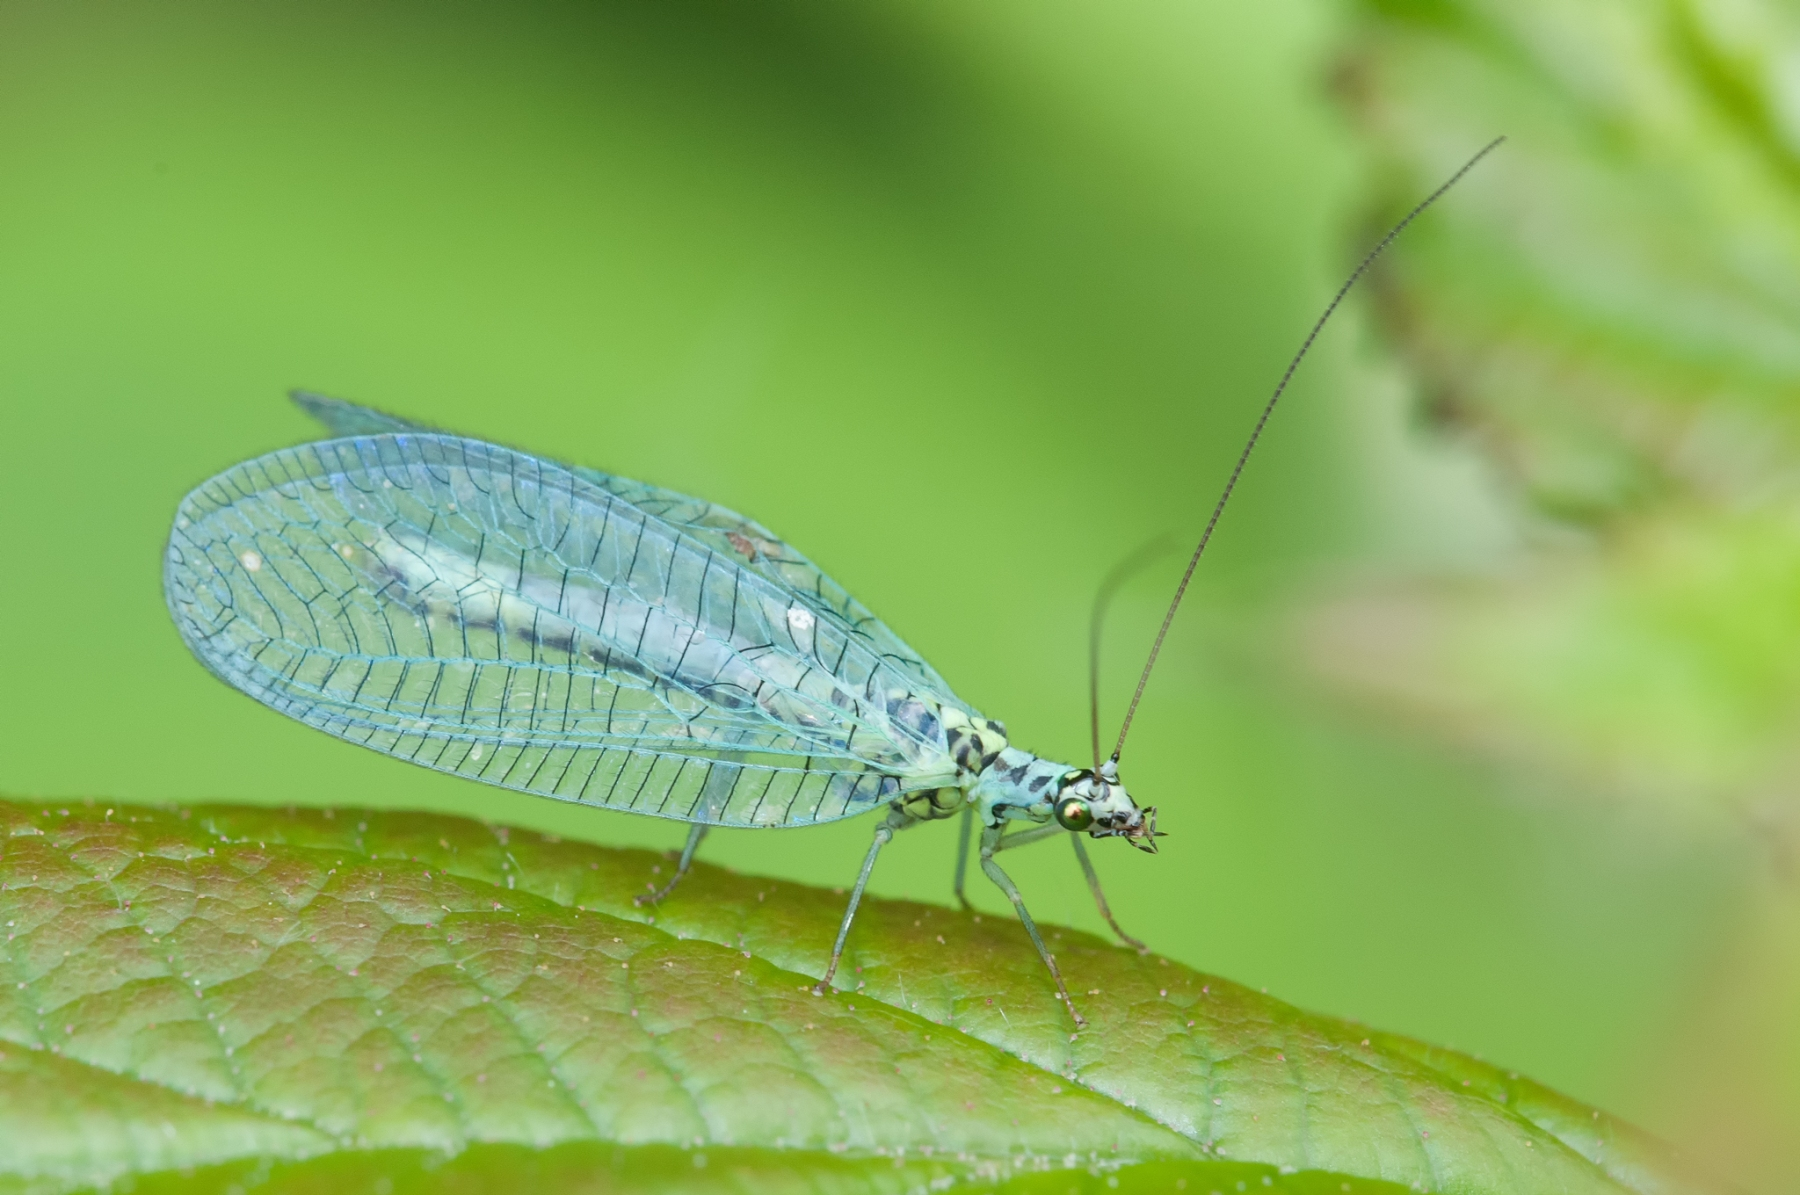 Chrysopa sp. - Green Lacewing, Lound